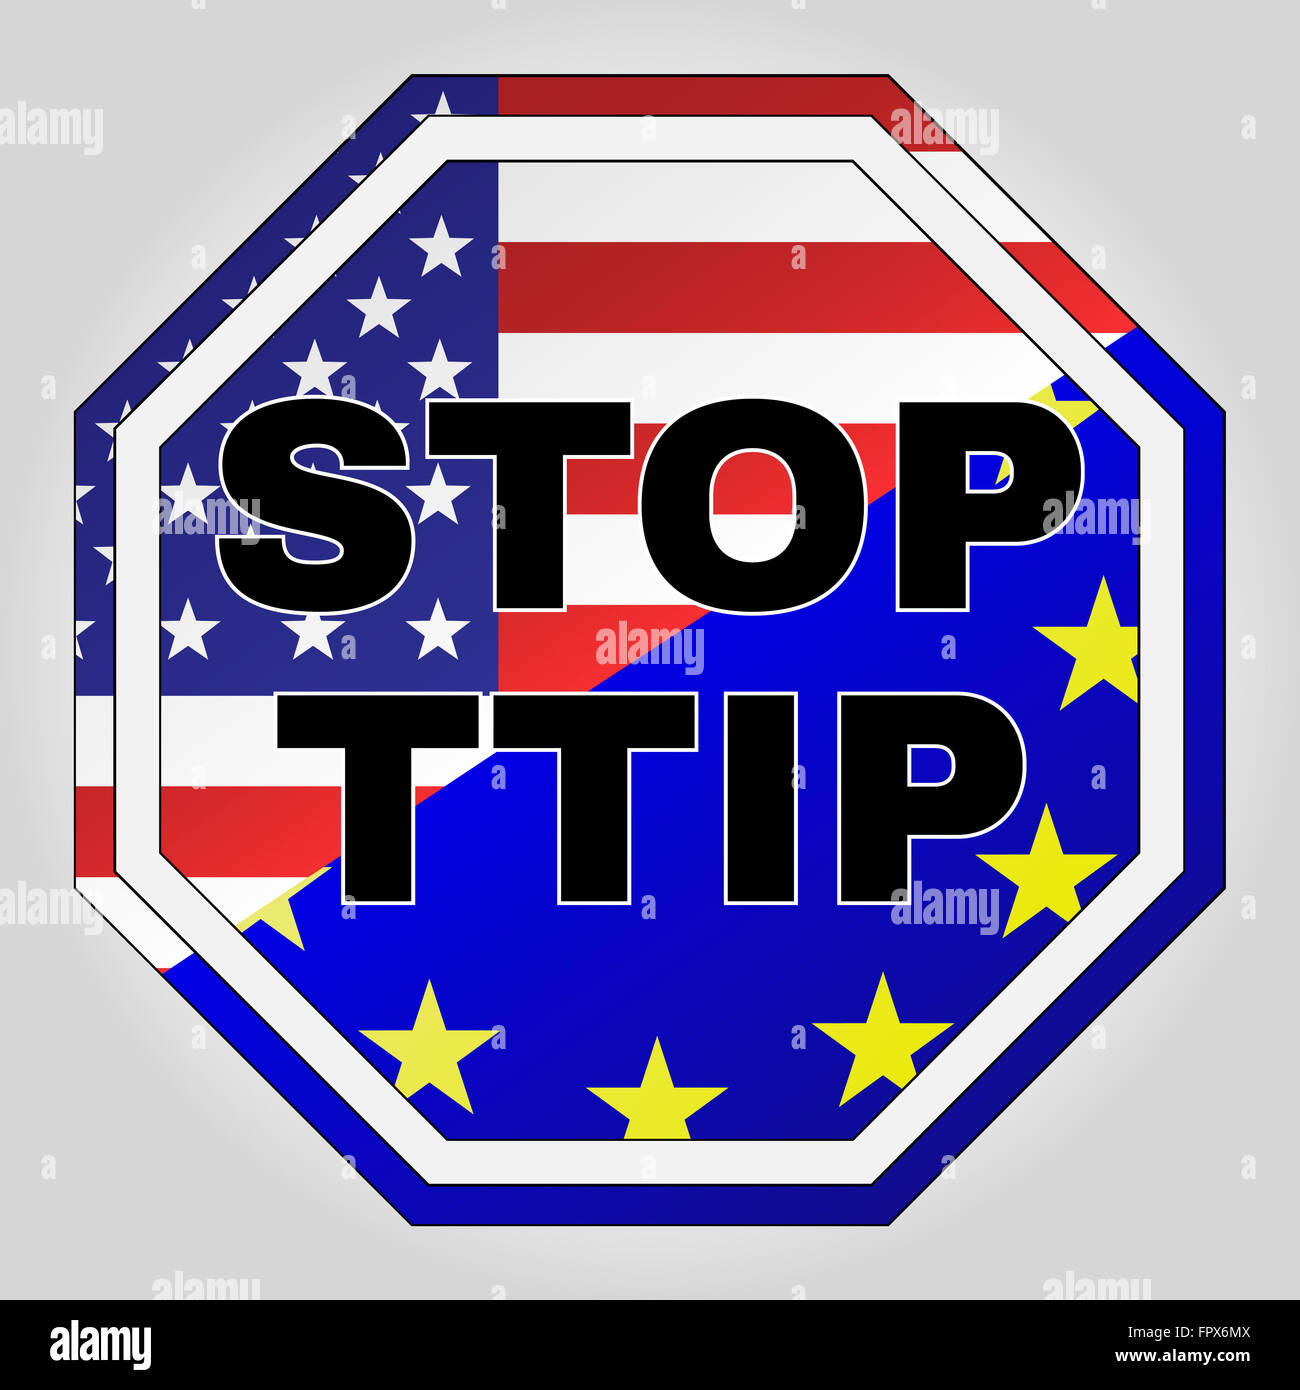 Stop Ttip Transatlantic Trade And Investment Partnership